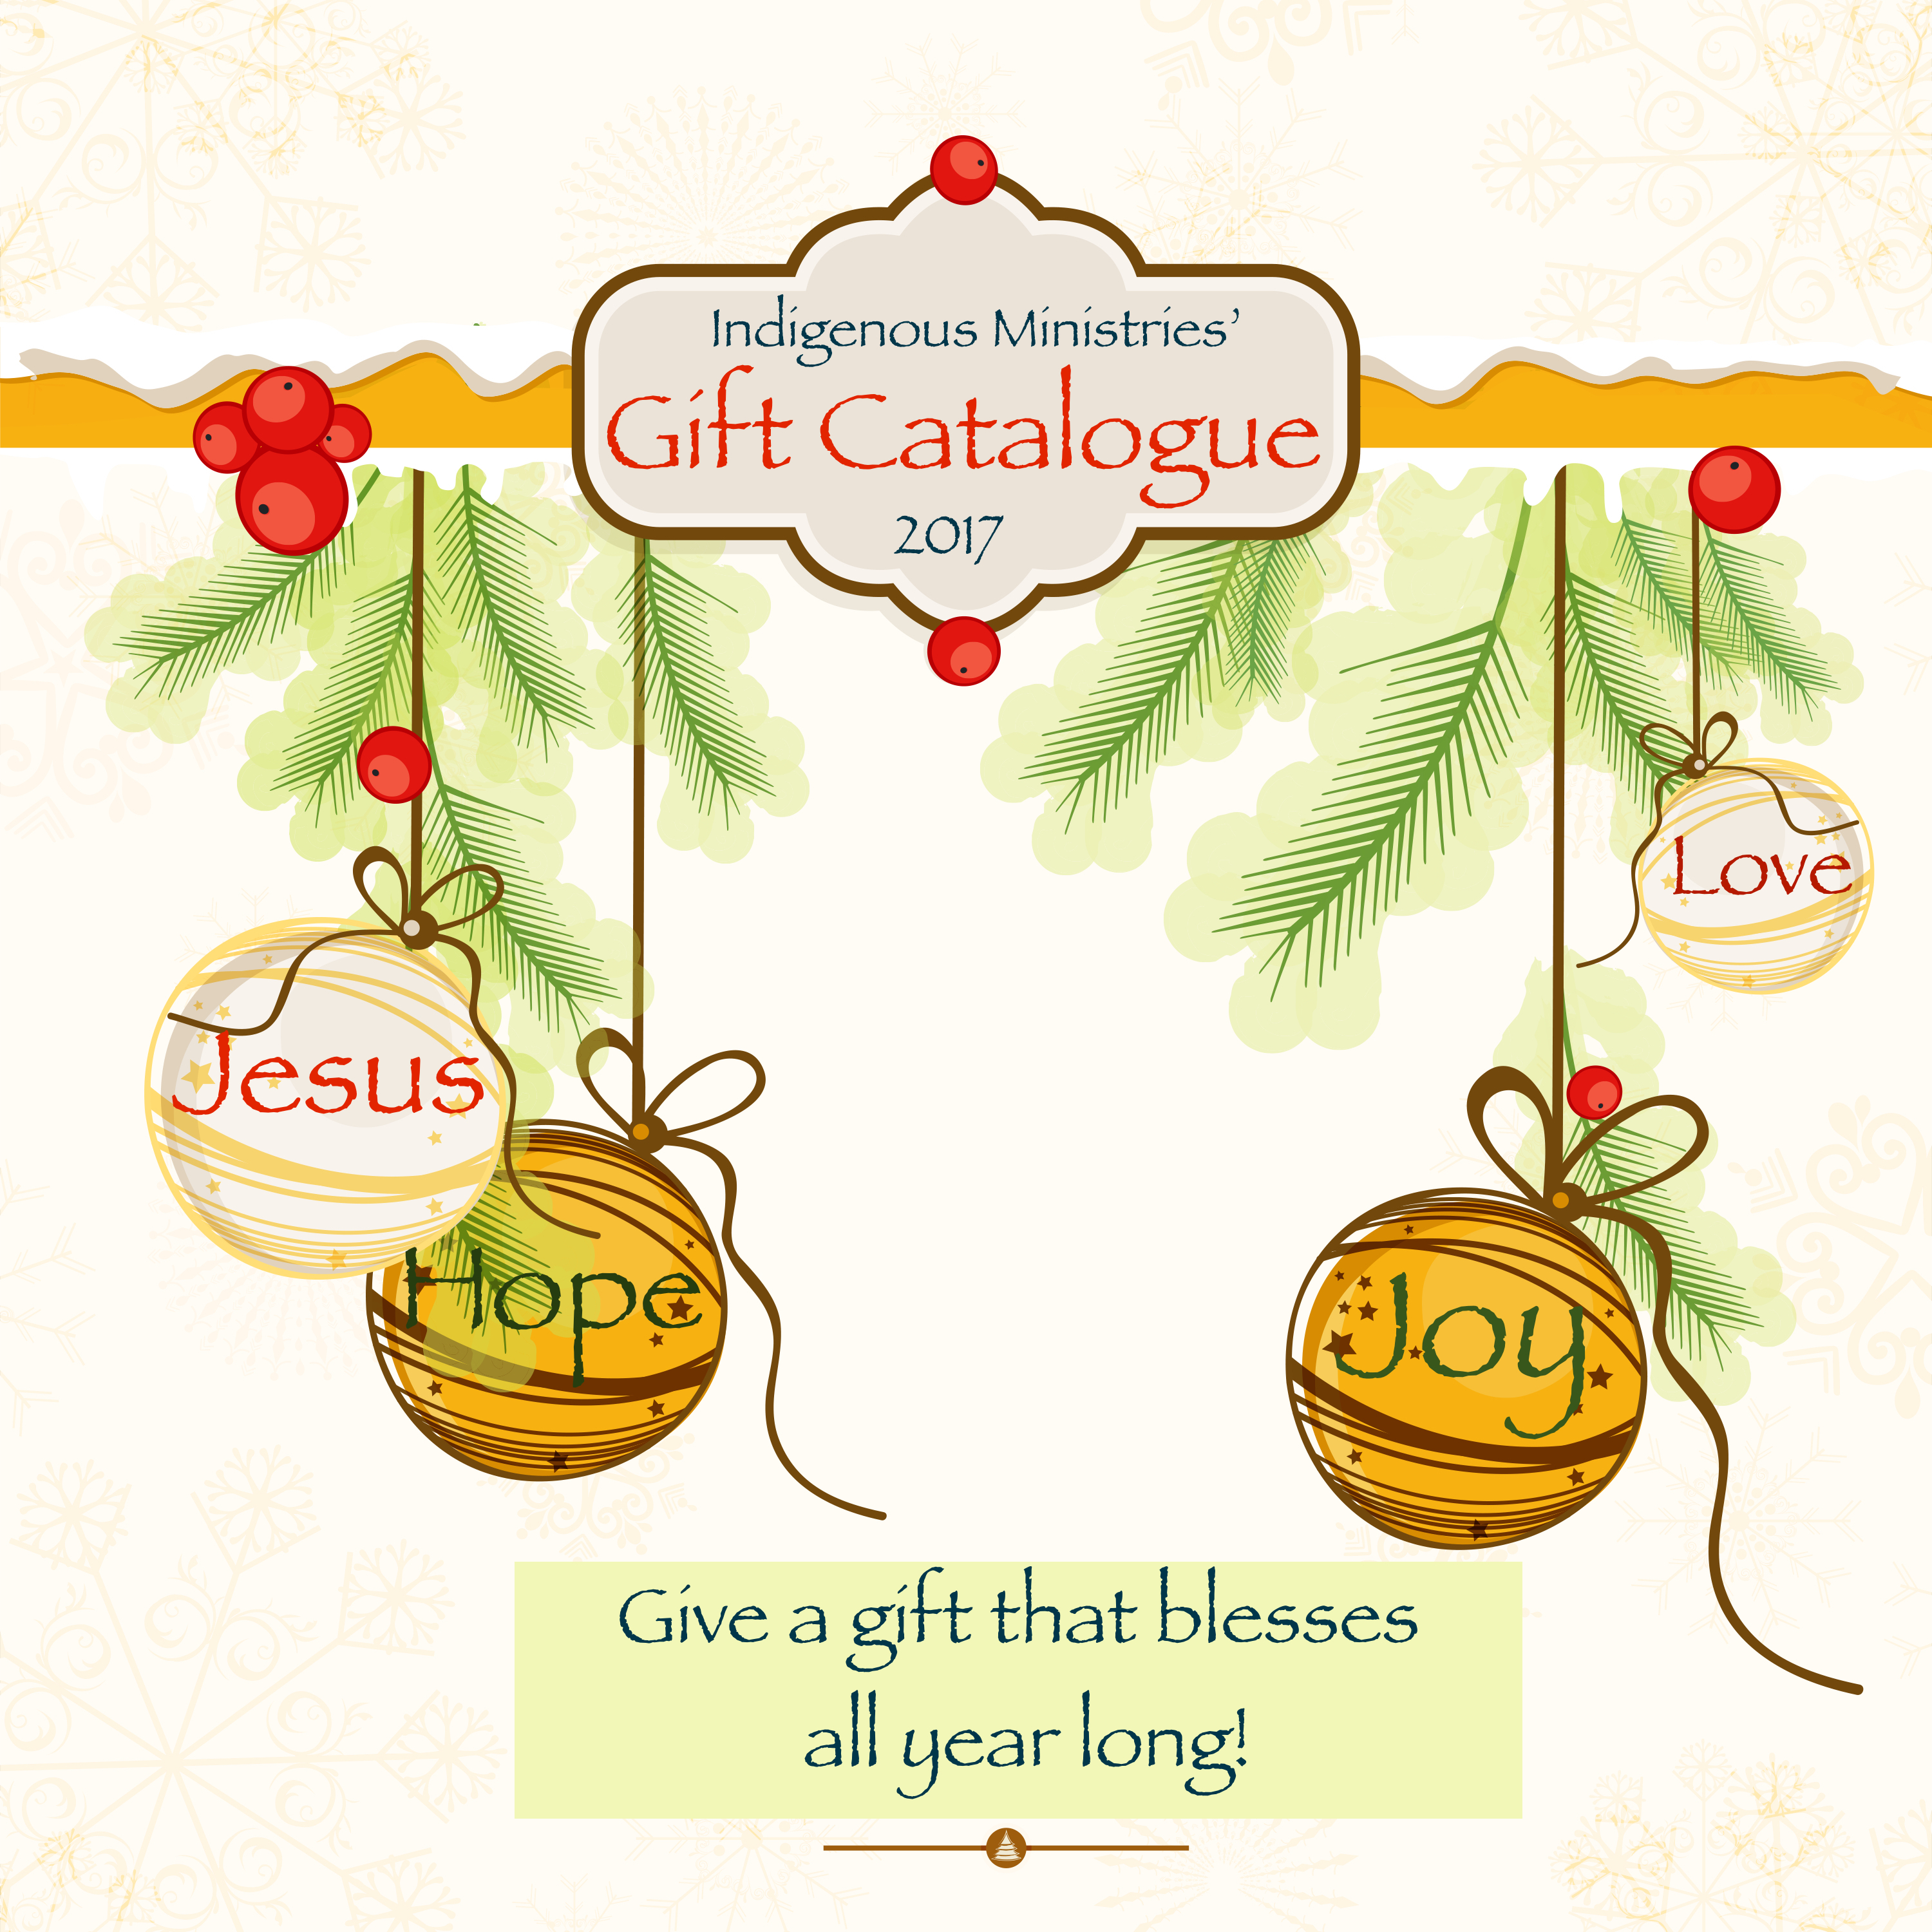 Christmas Gift Catalog - Indigenous Ministries